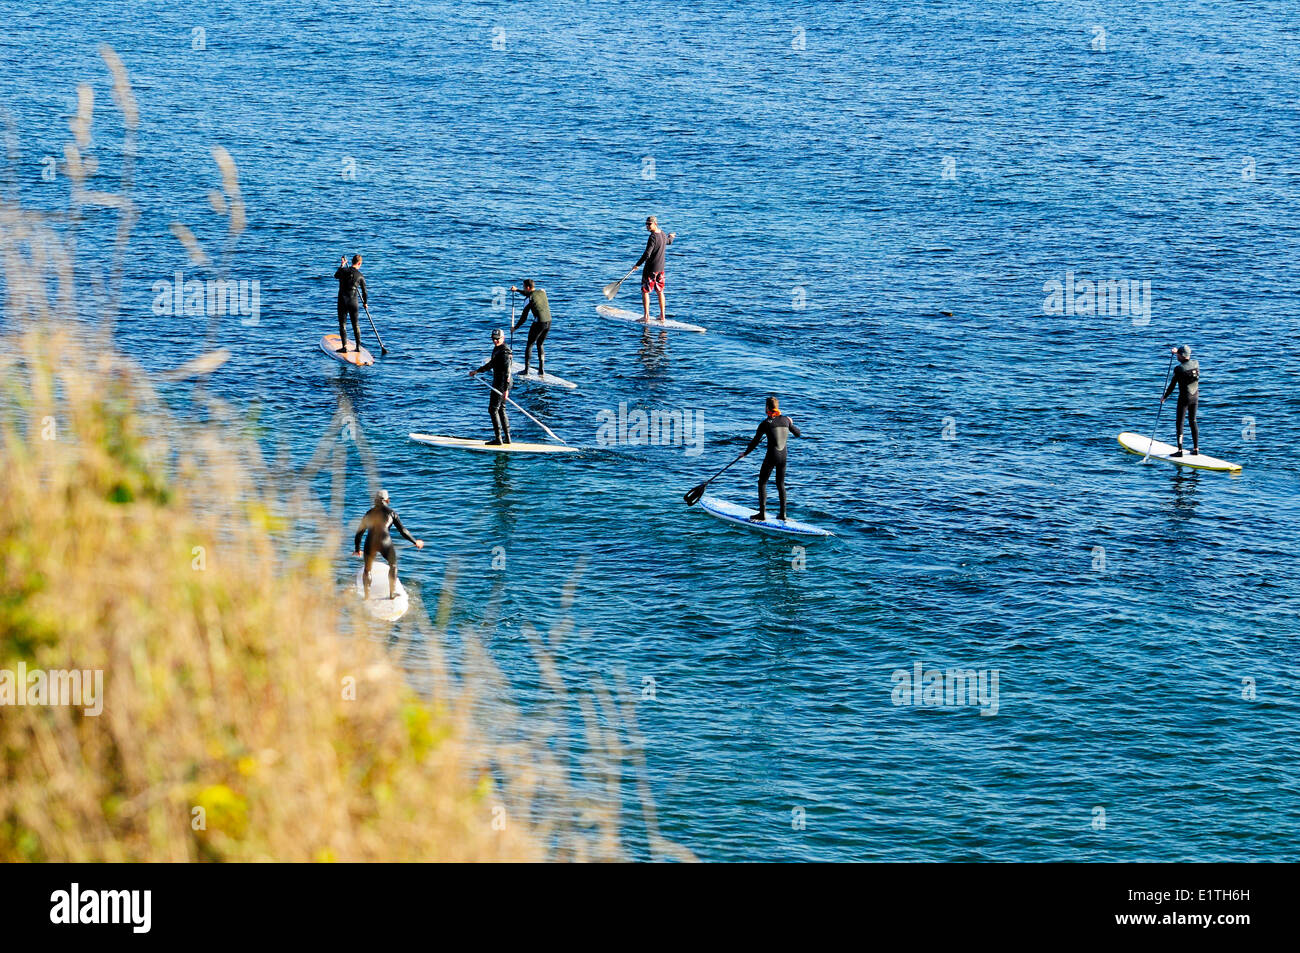 Seven guys use stand up paddleboards to make their way along the water near Dallas Rd. in Victoria, BC. - Stock Image